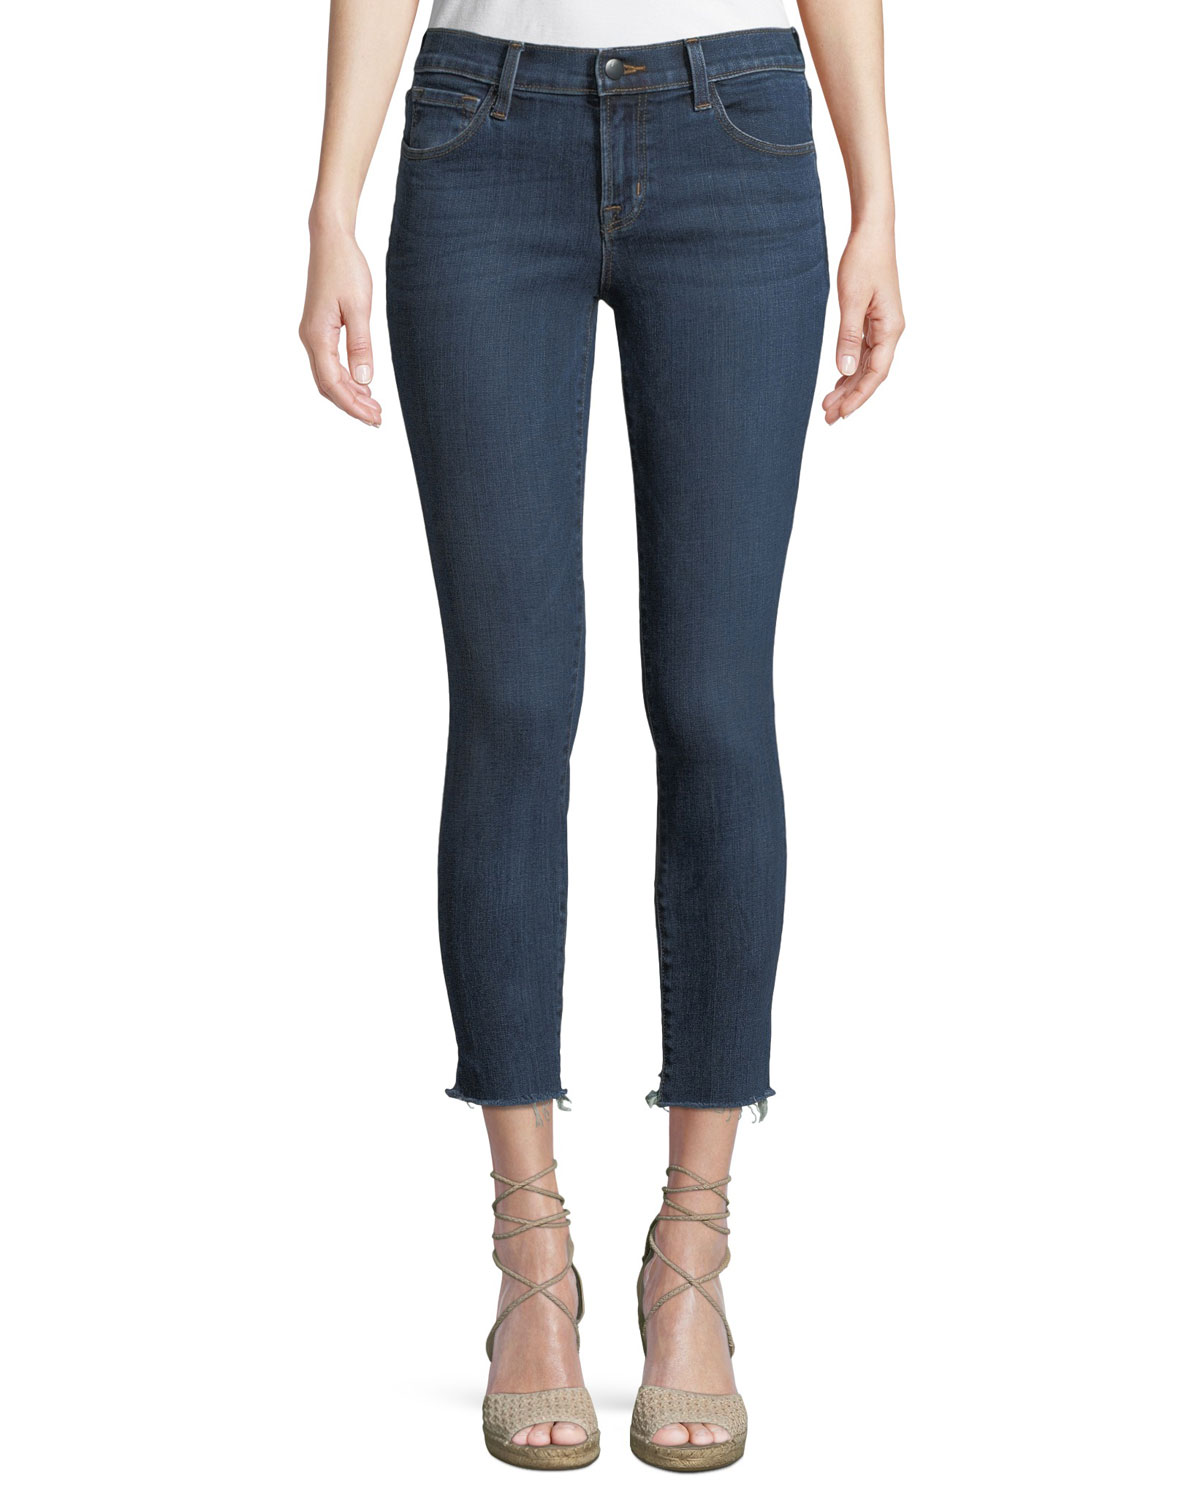 835 Mid-Rise Cropped Skinny Jeans with Cutoff Hem